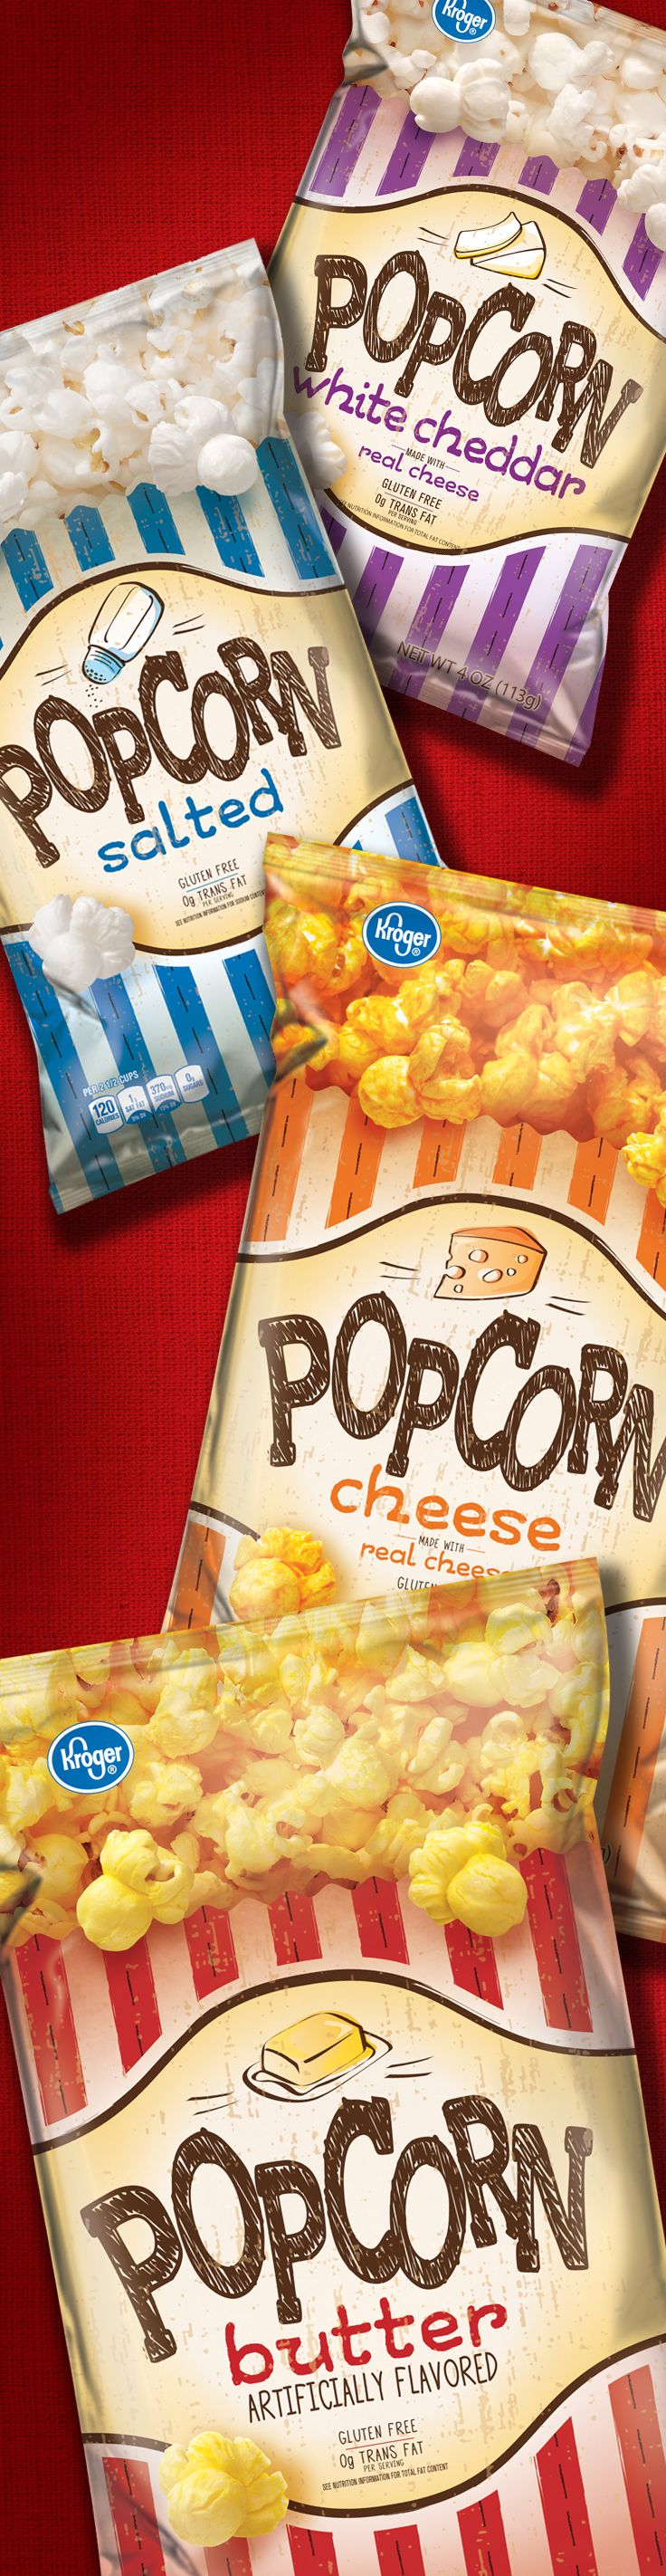 Popcorn - Packaging designed by Design Resource Center http://www.drcchicago.com/